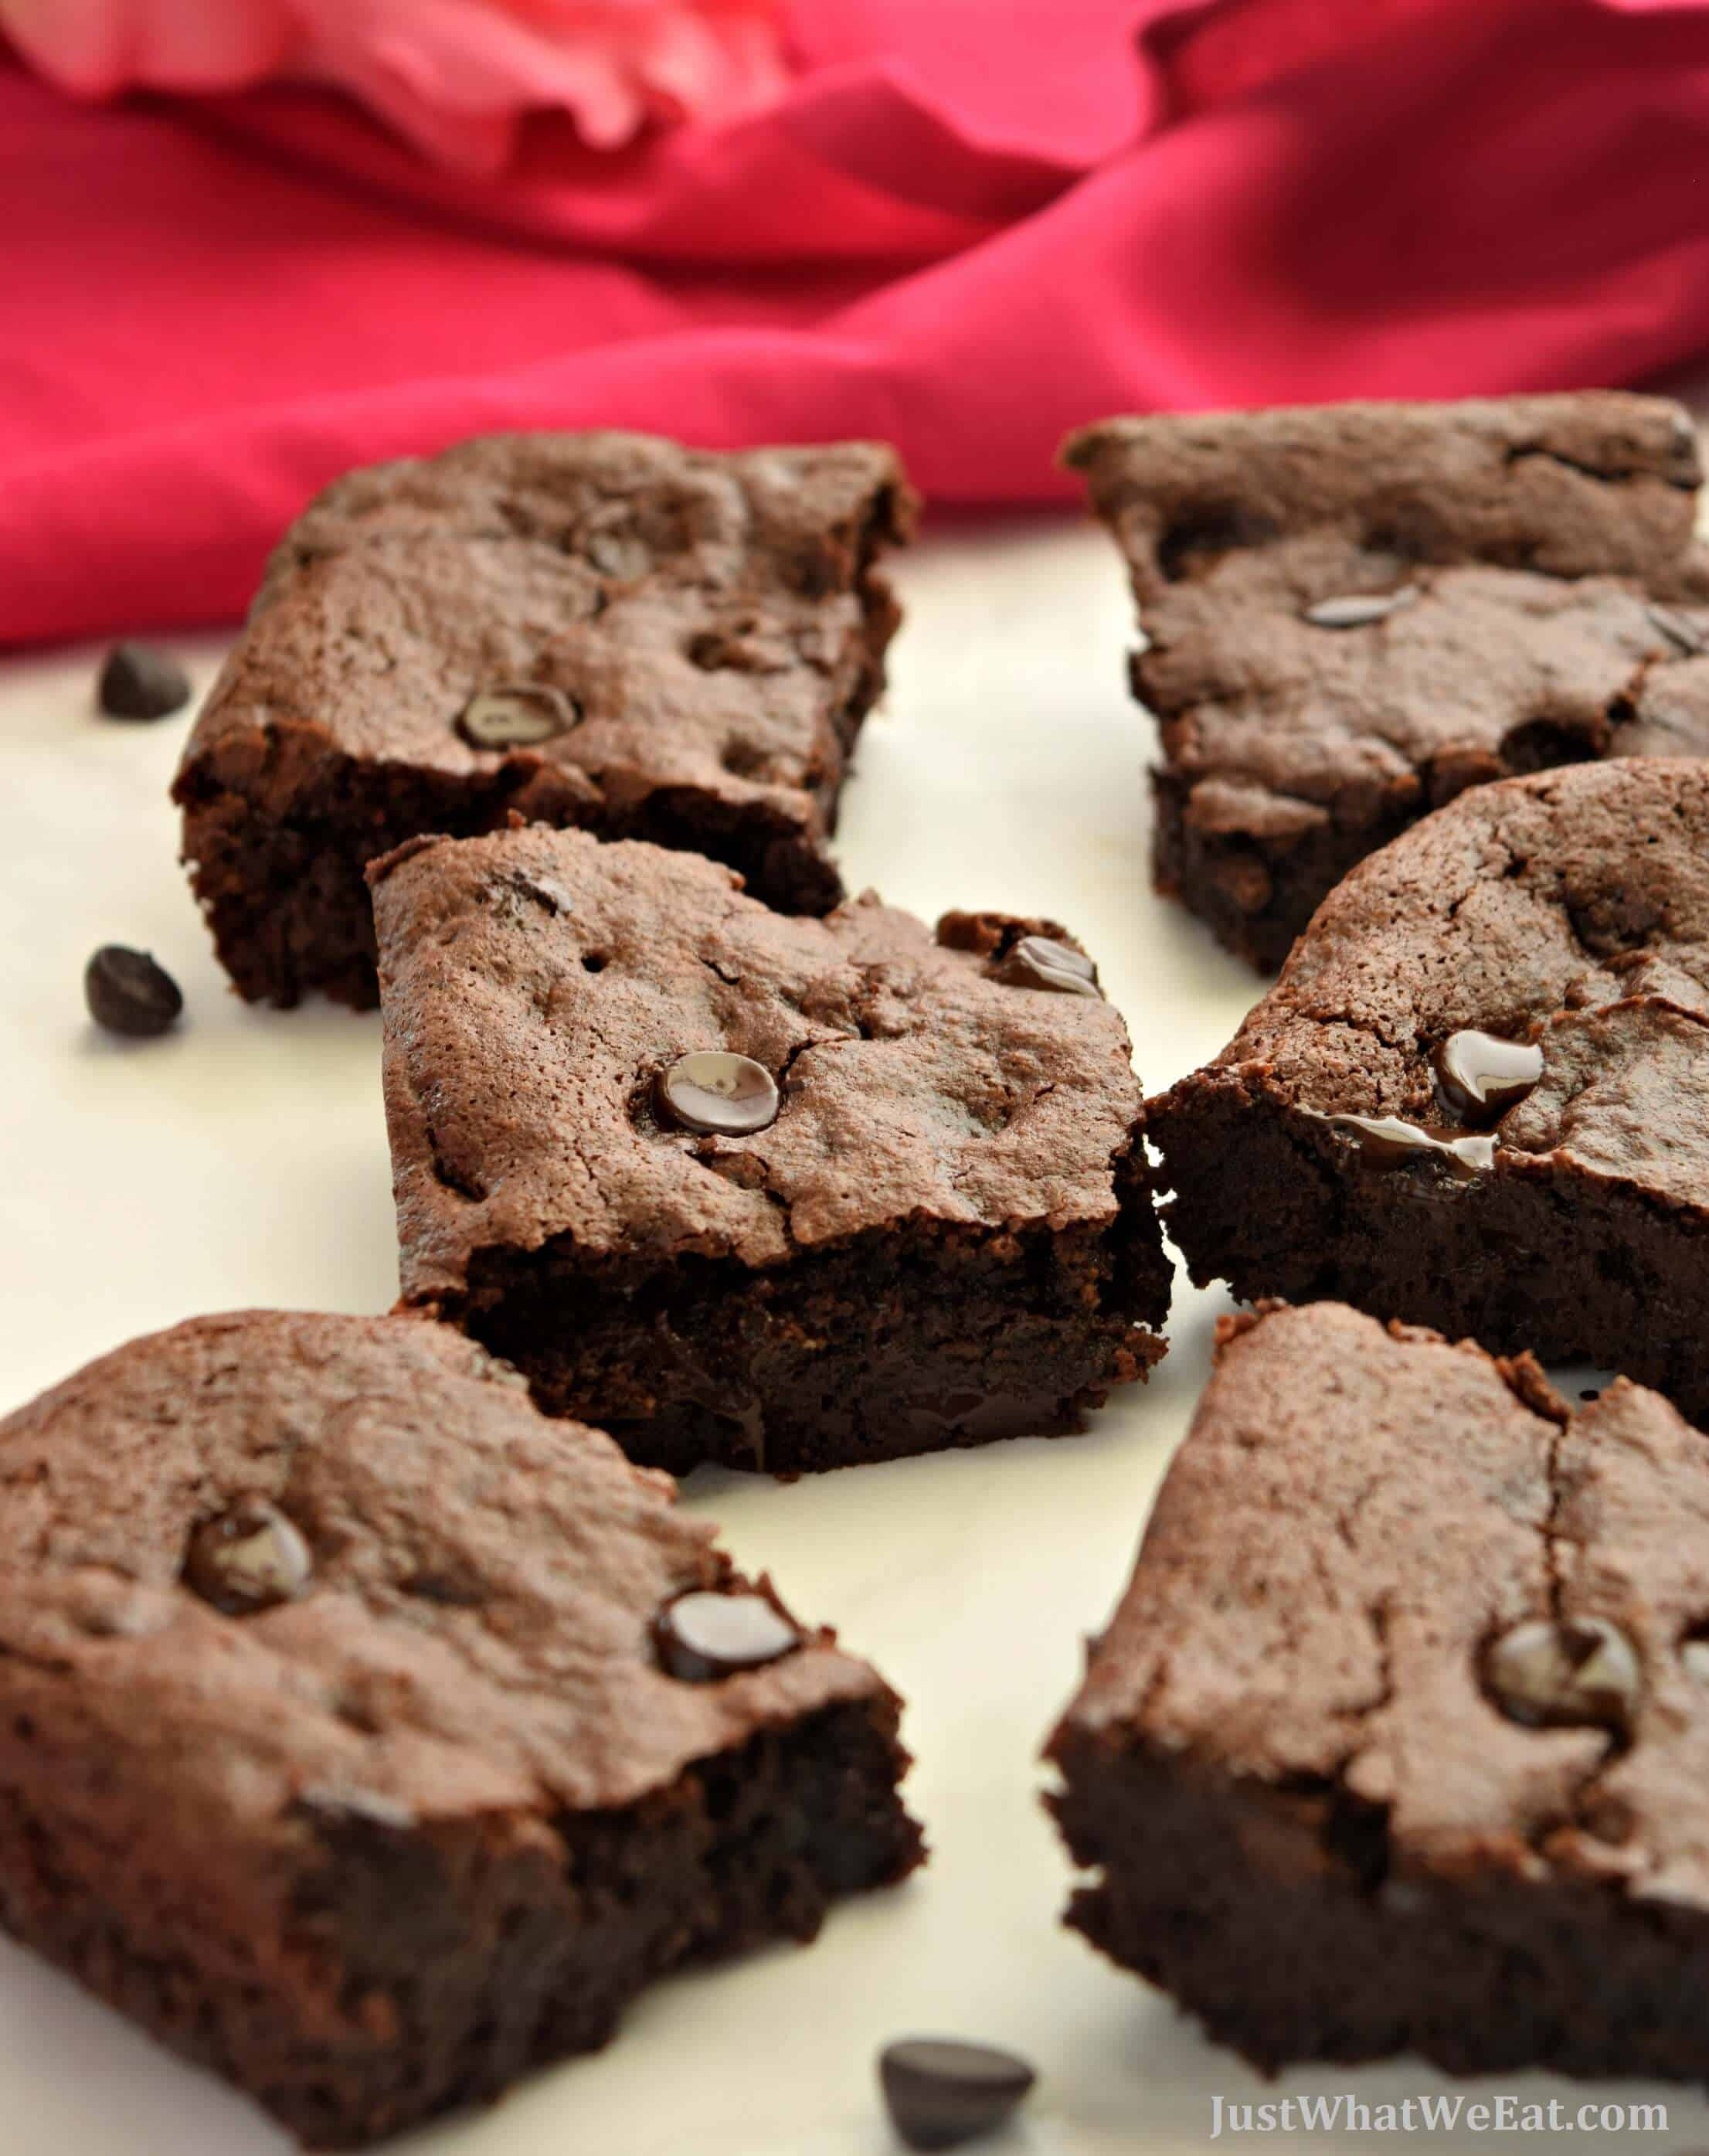 Fudgy Brownies - Gluten Free, Vegan, & Refined Sugar Free